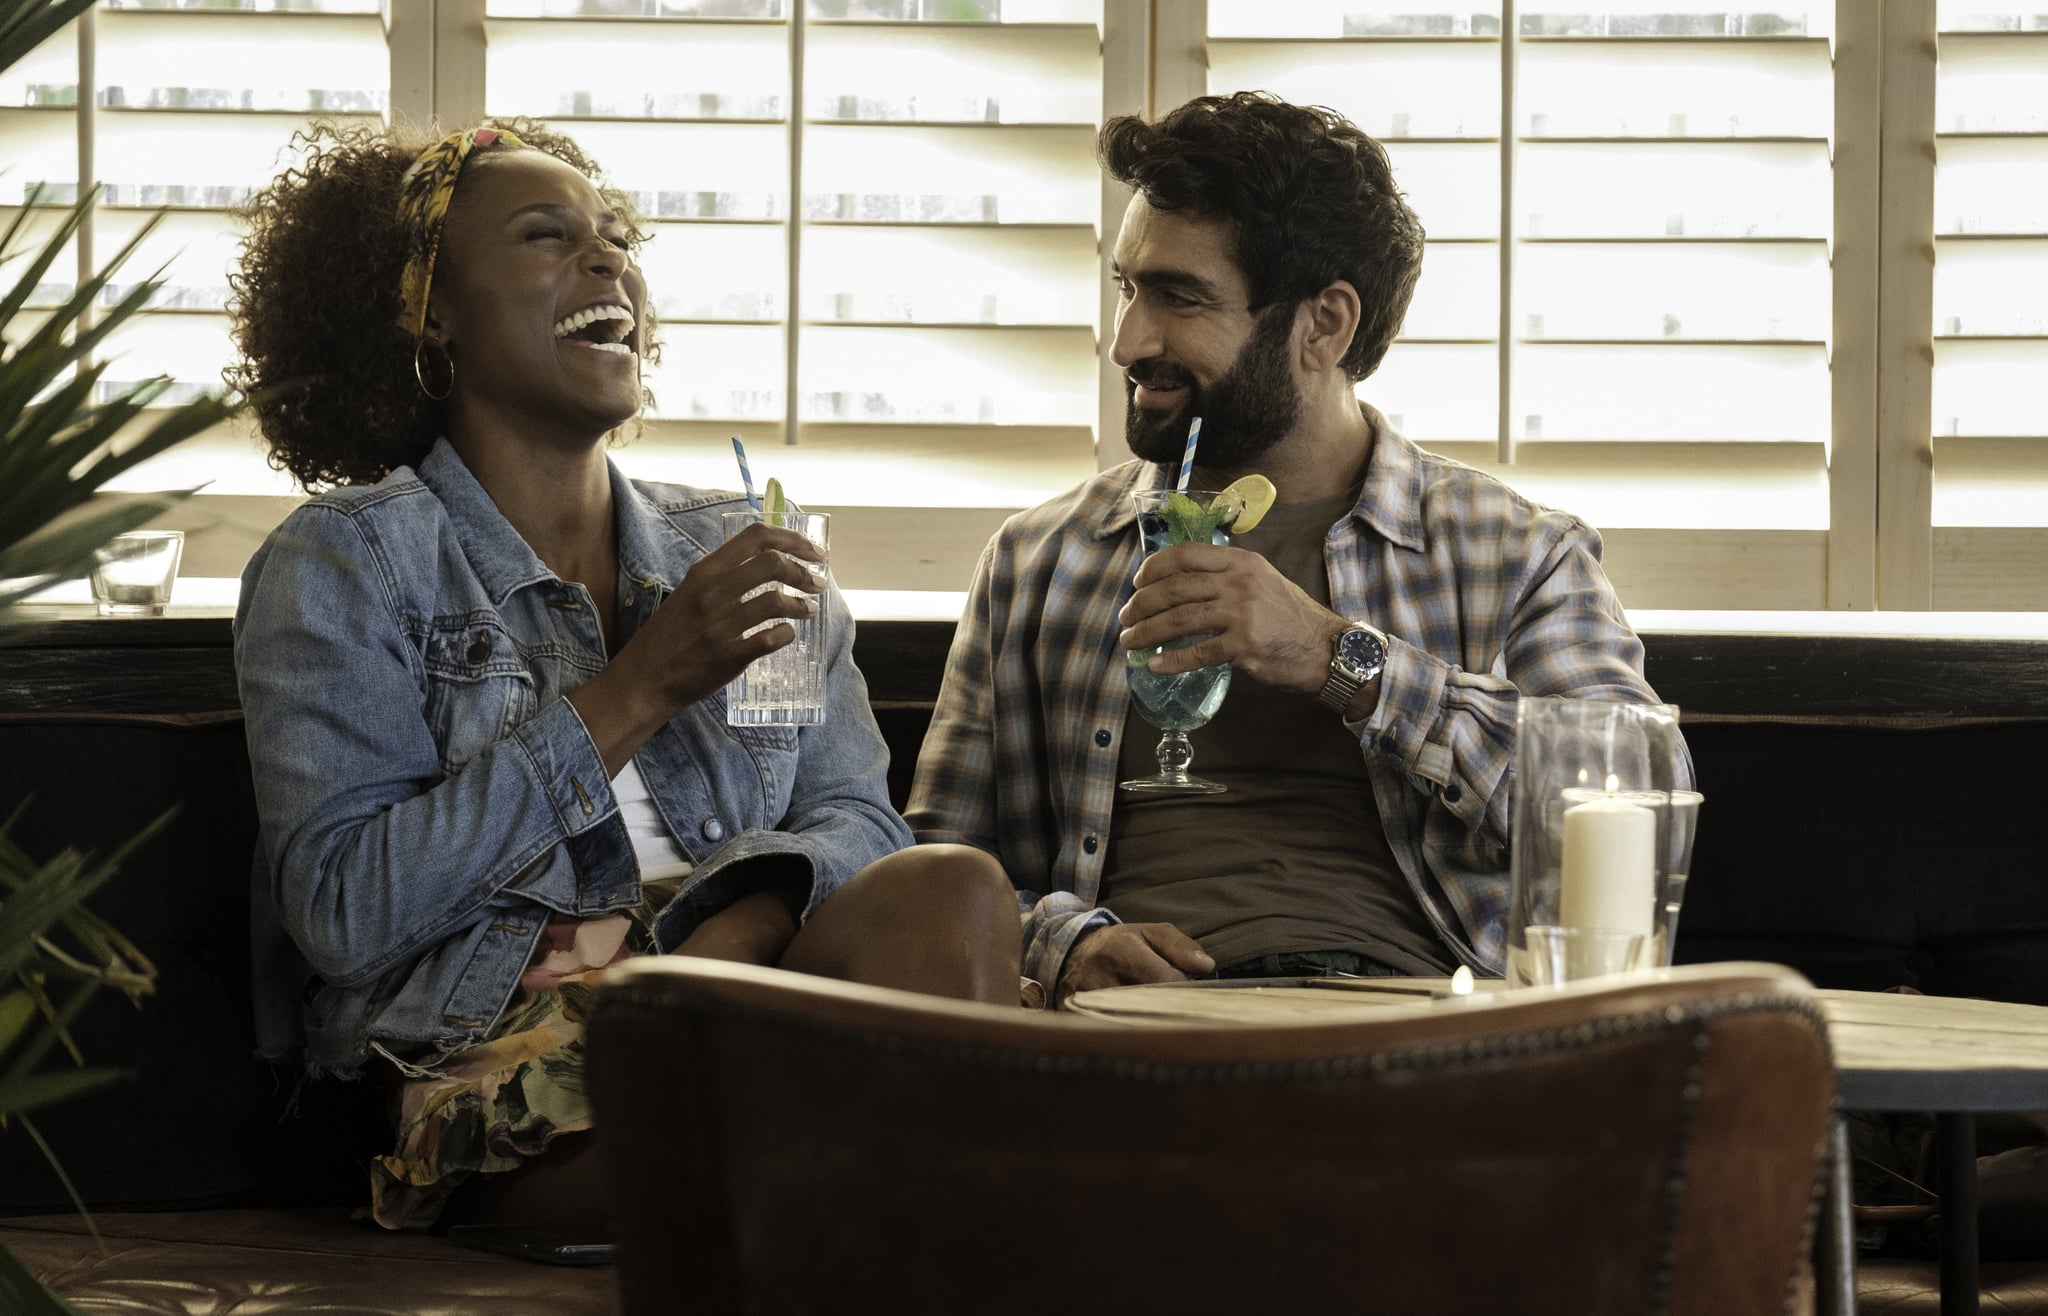 Issa Rae as Leilani, Kumail Nanjiana as Jibran of